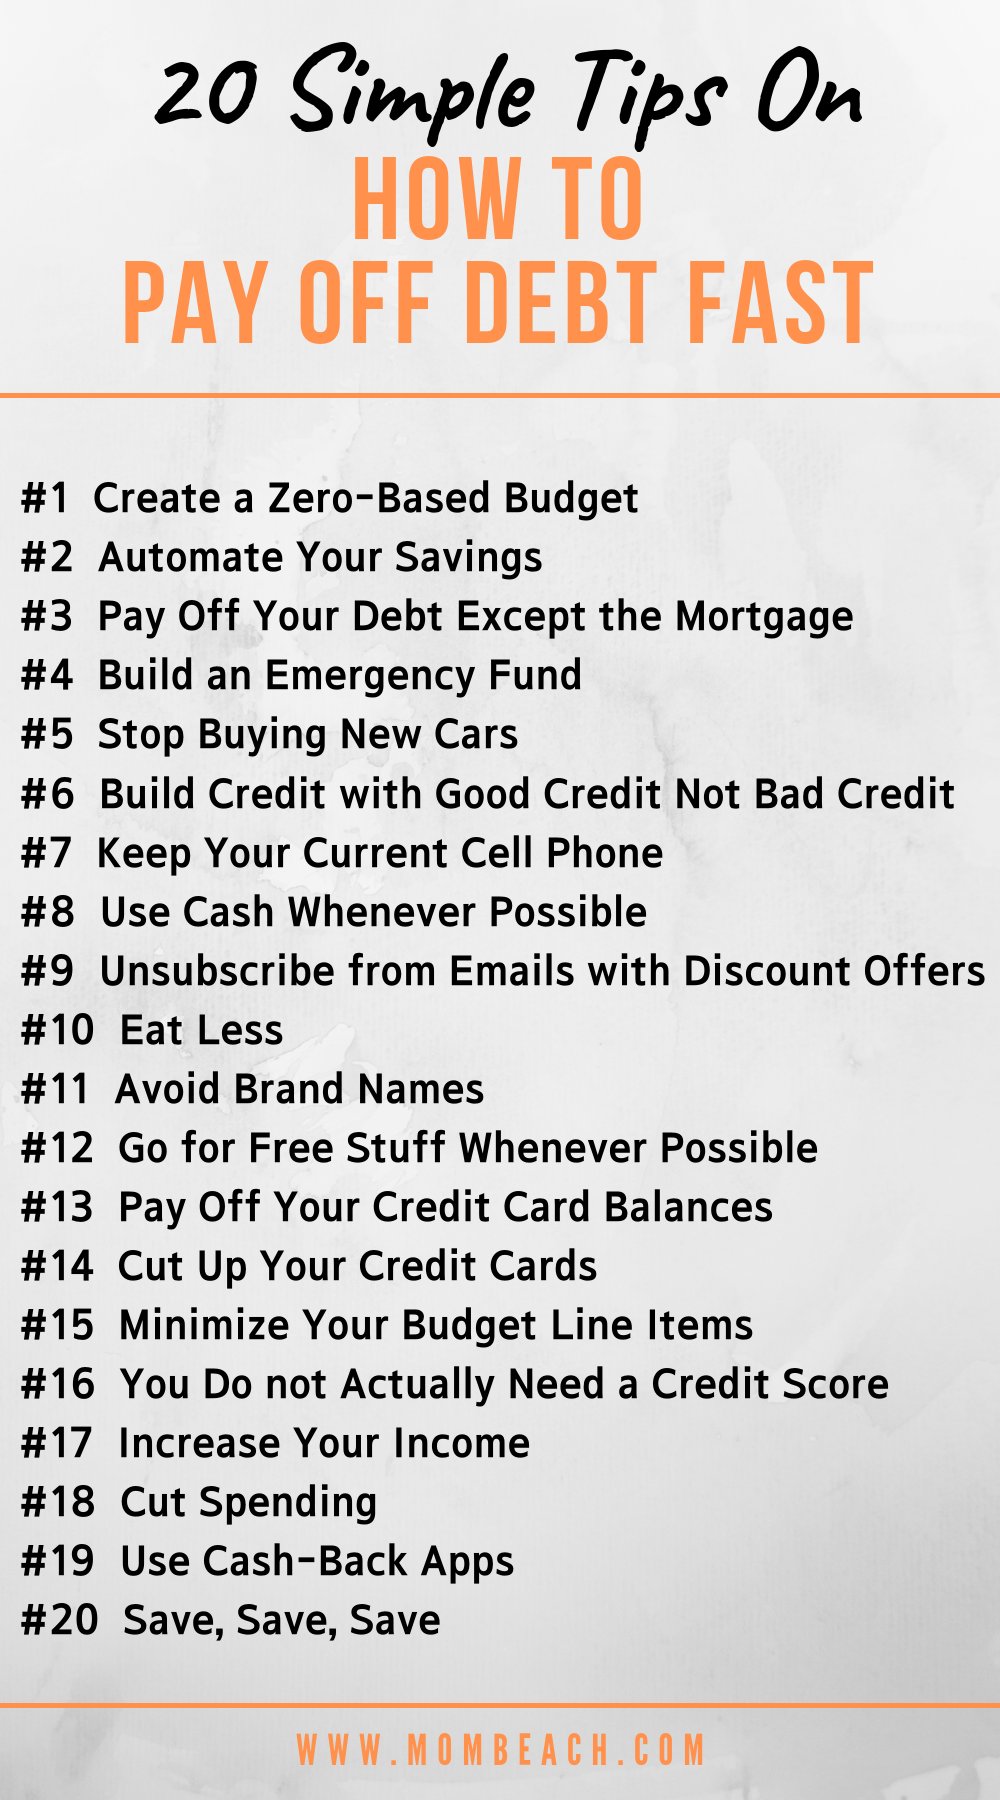 Check out these 20 super simple money tips from Dave Ramsey that he wants you to know now to save money and pay off your debt! Pay off your family's debt quick and easy by following Dave Ramsey's money saving tips. You can get out of your debt faster by following this financial guru's advice. #payoffdebt #debtpayoff #daveramsey #debtsnowball #moneysavingtips #budgeting #savemoney #howtosavemoney #financialpeace #debt